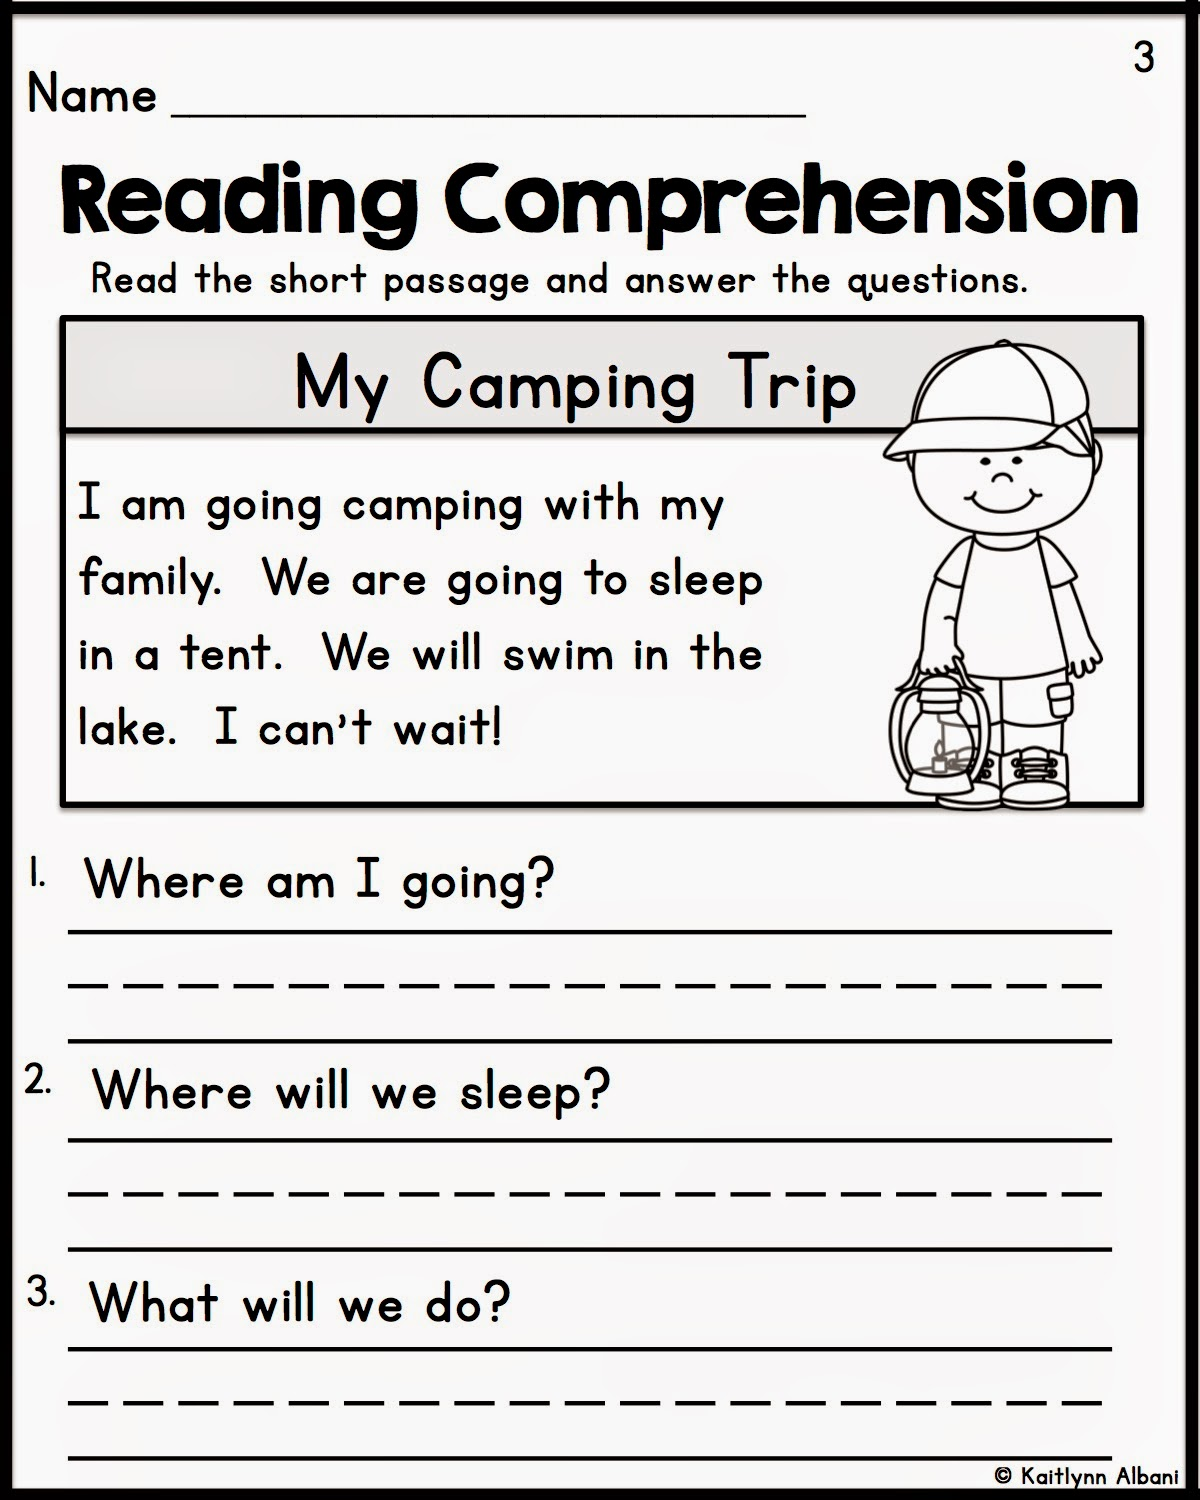 Printables Reading Comprehension Worksheet For Kindergarten 2 free printable kindergarten reading comprehension worksheets scalien worksheets